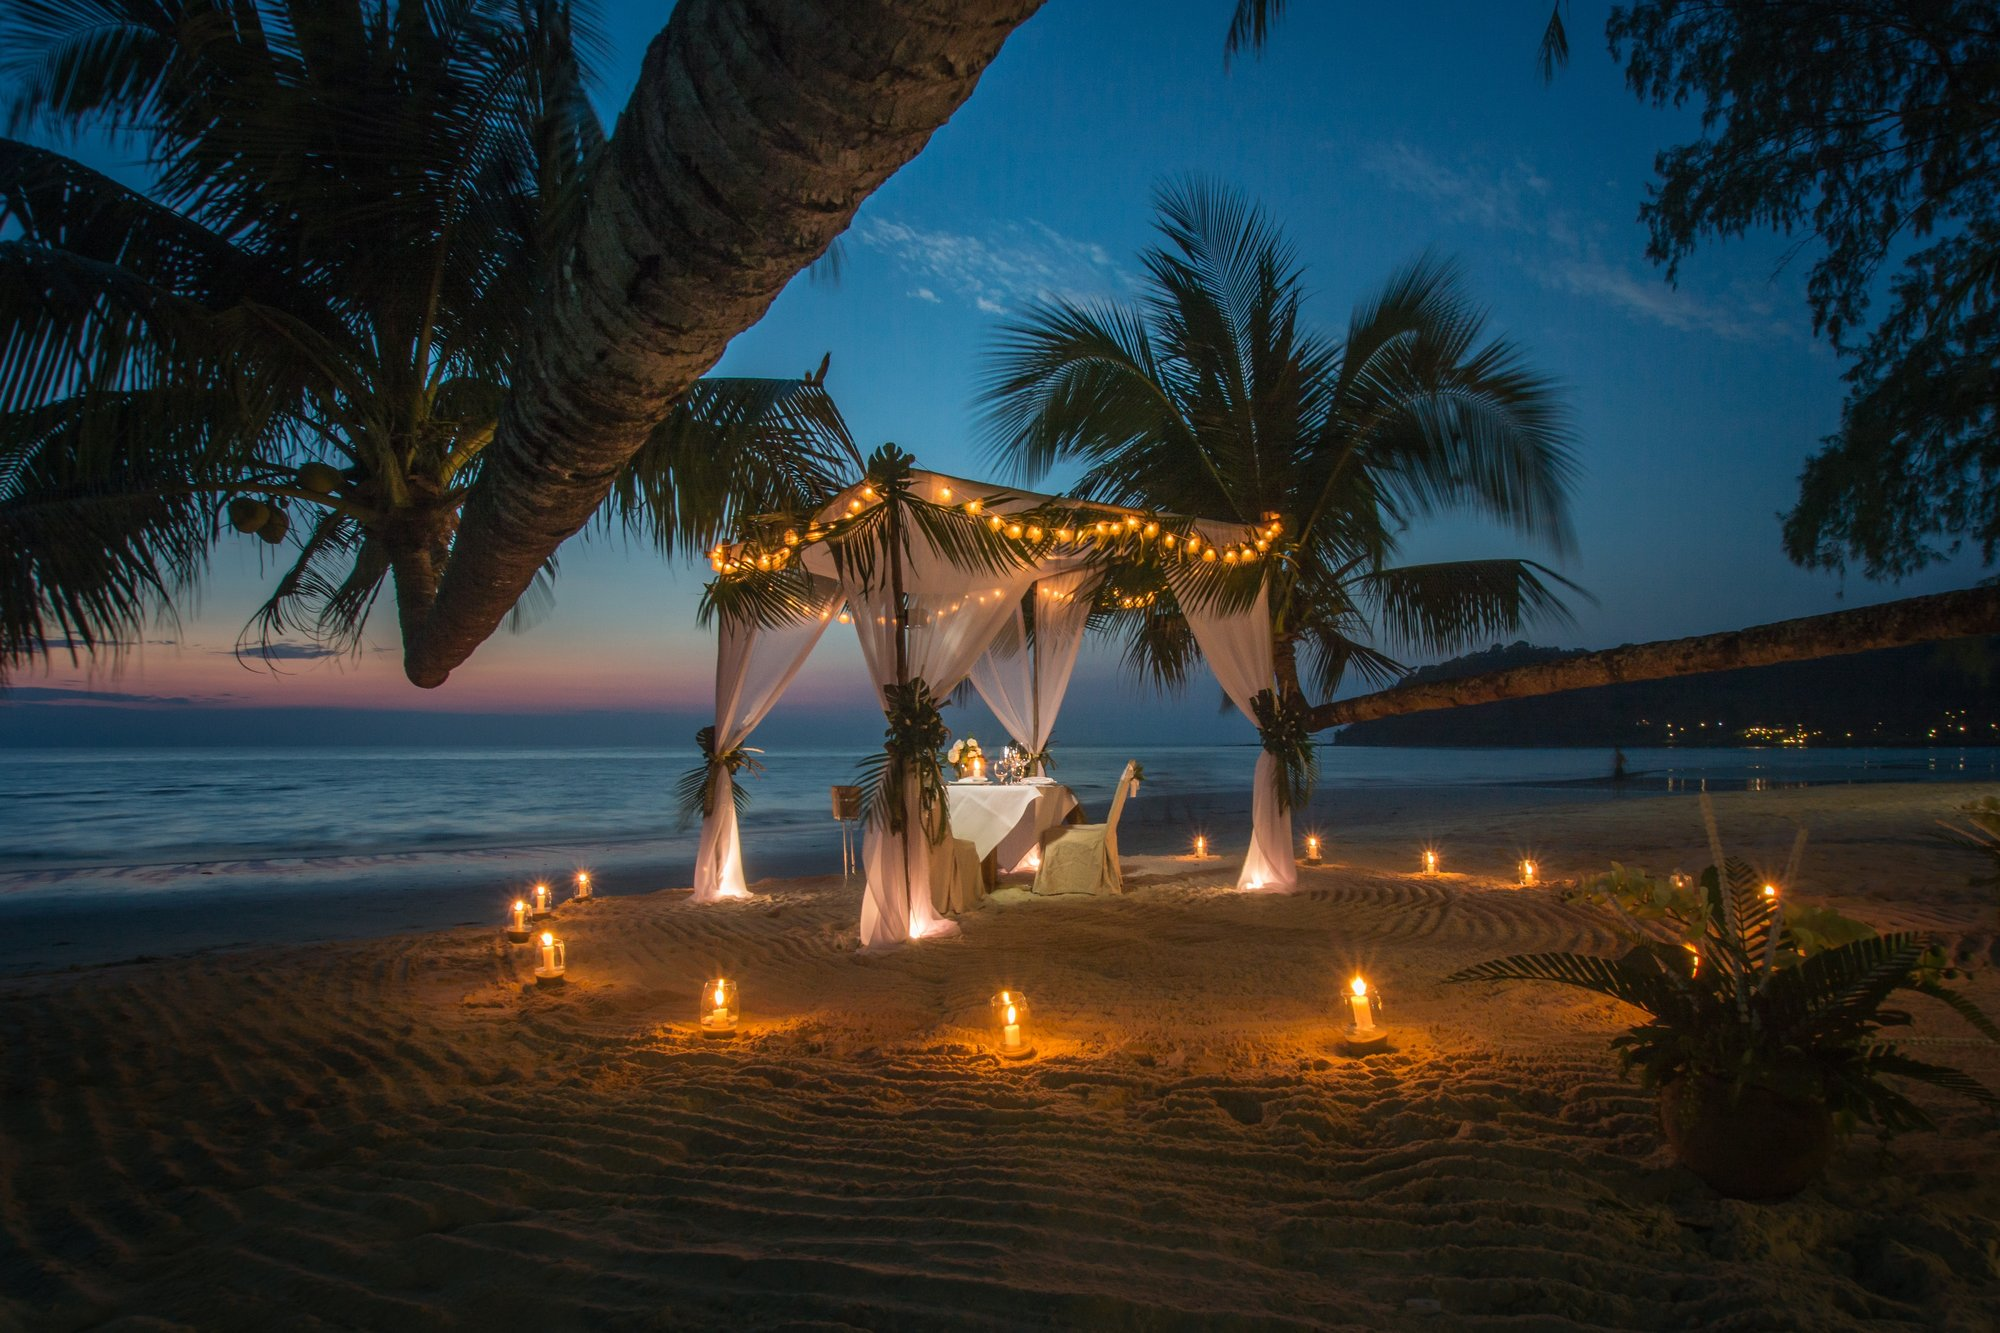 7 Ideas for Romantic Marriage Proposals in Bali